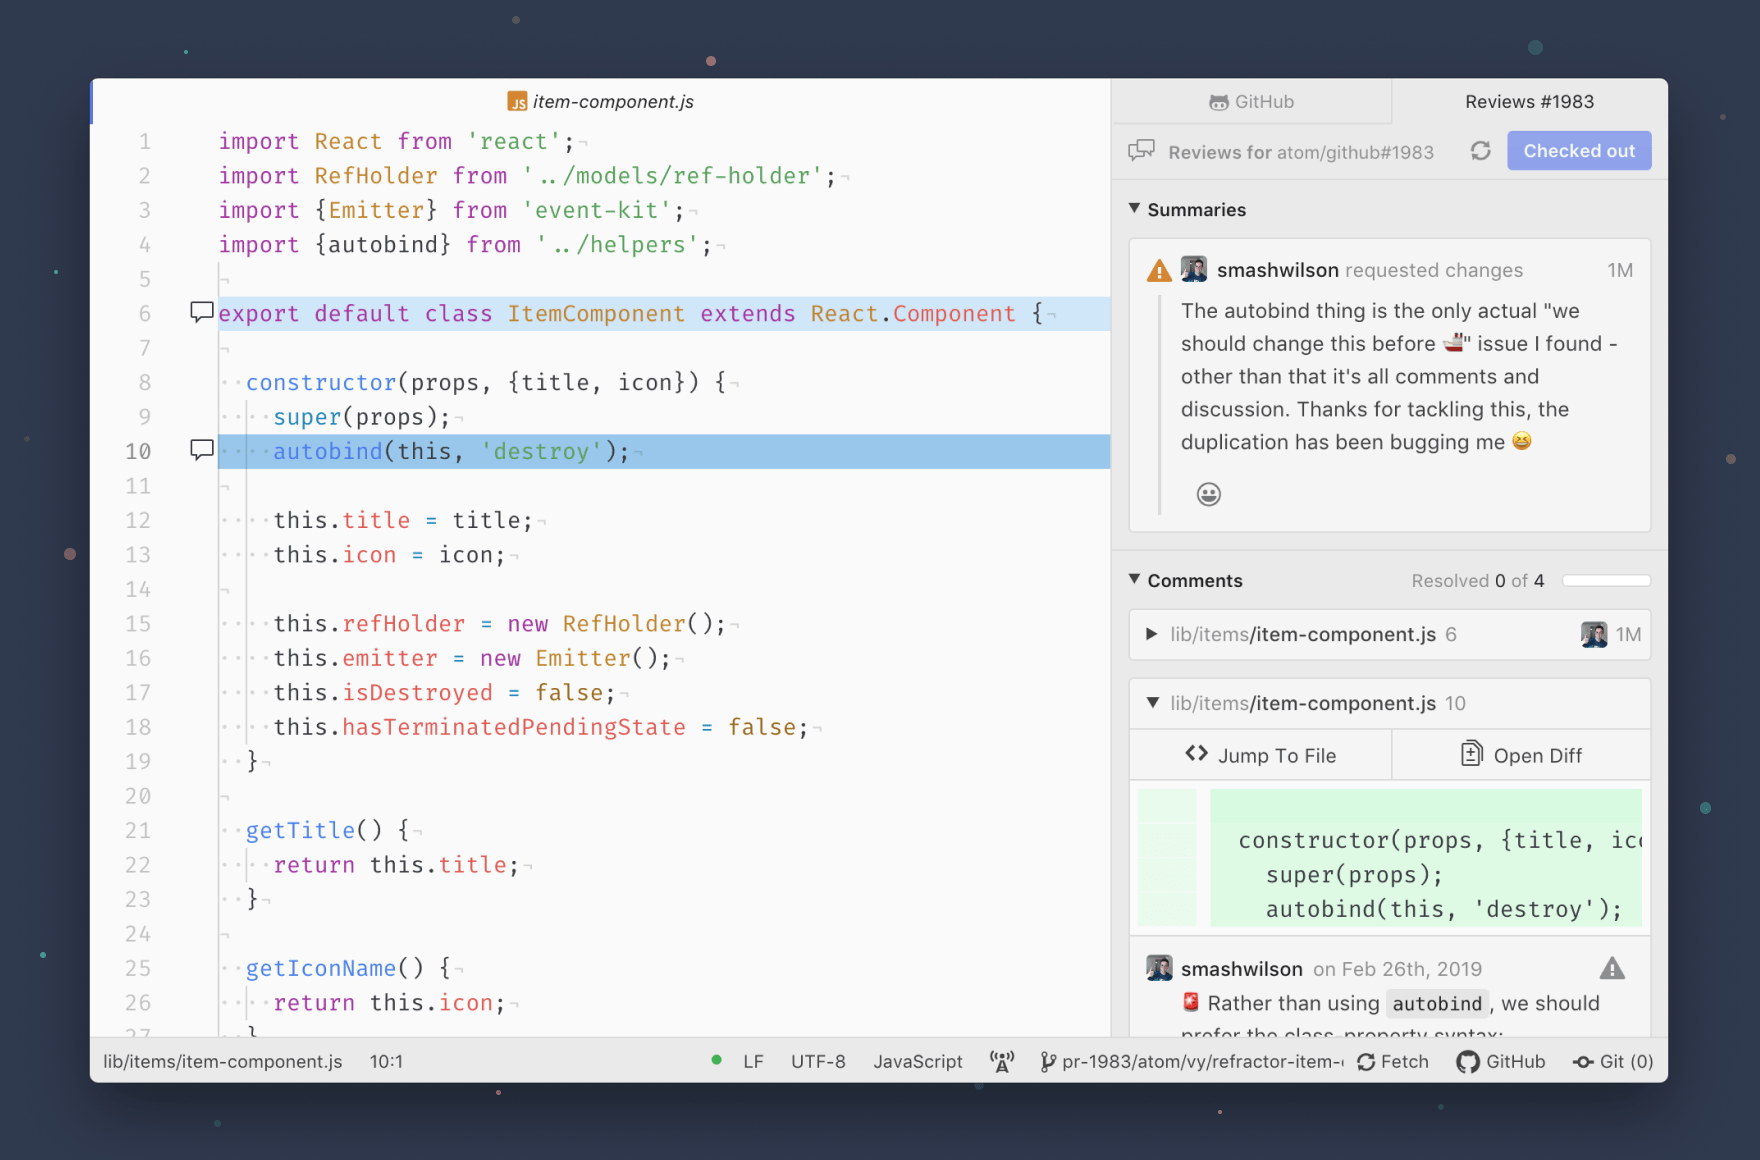 Easily review comments in Atom - The GitHub Blog